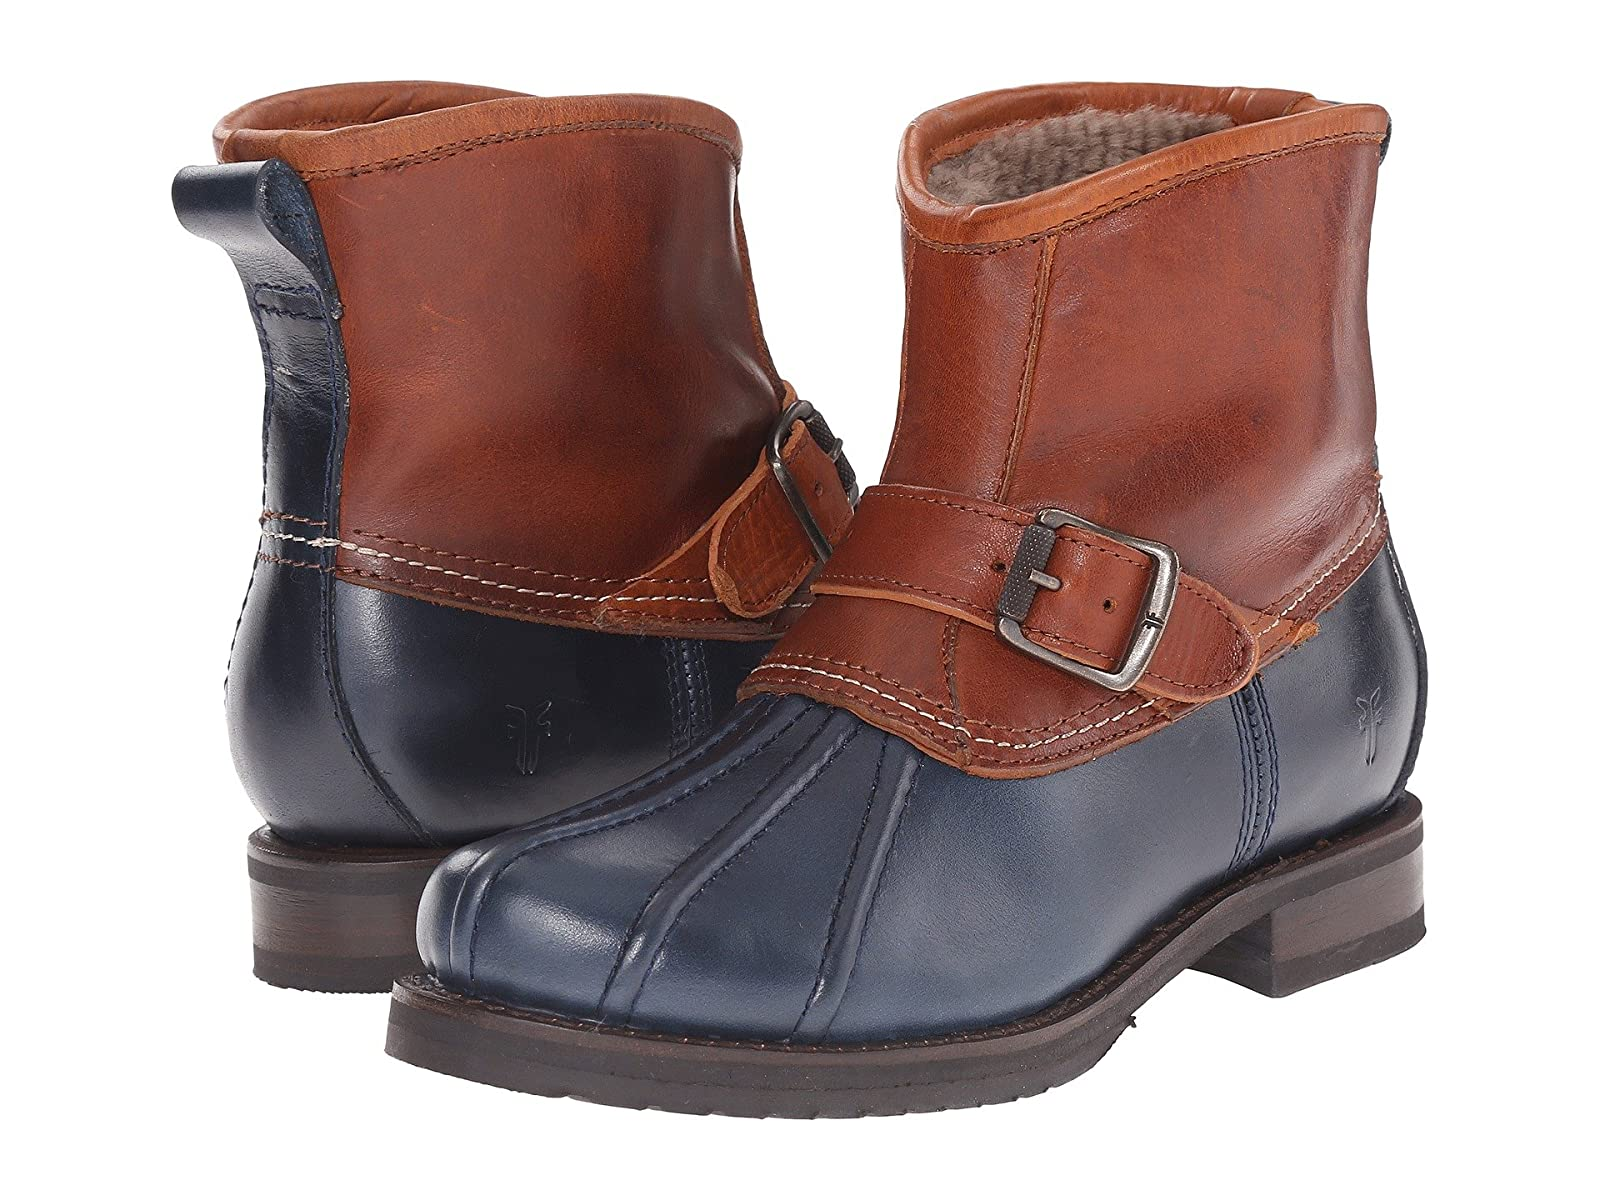 Frye Veronica Duck EngineerCheap and distinctive eye-catching shoes